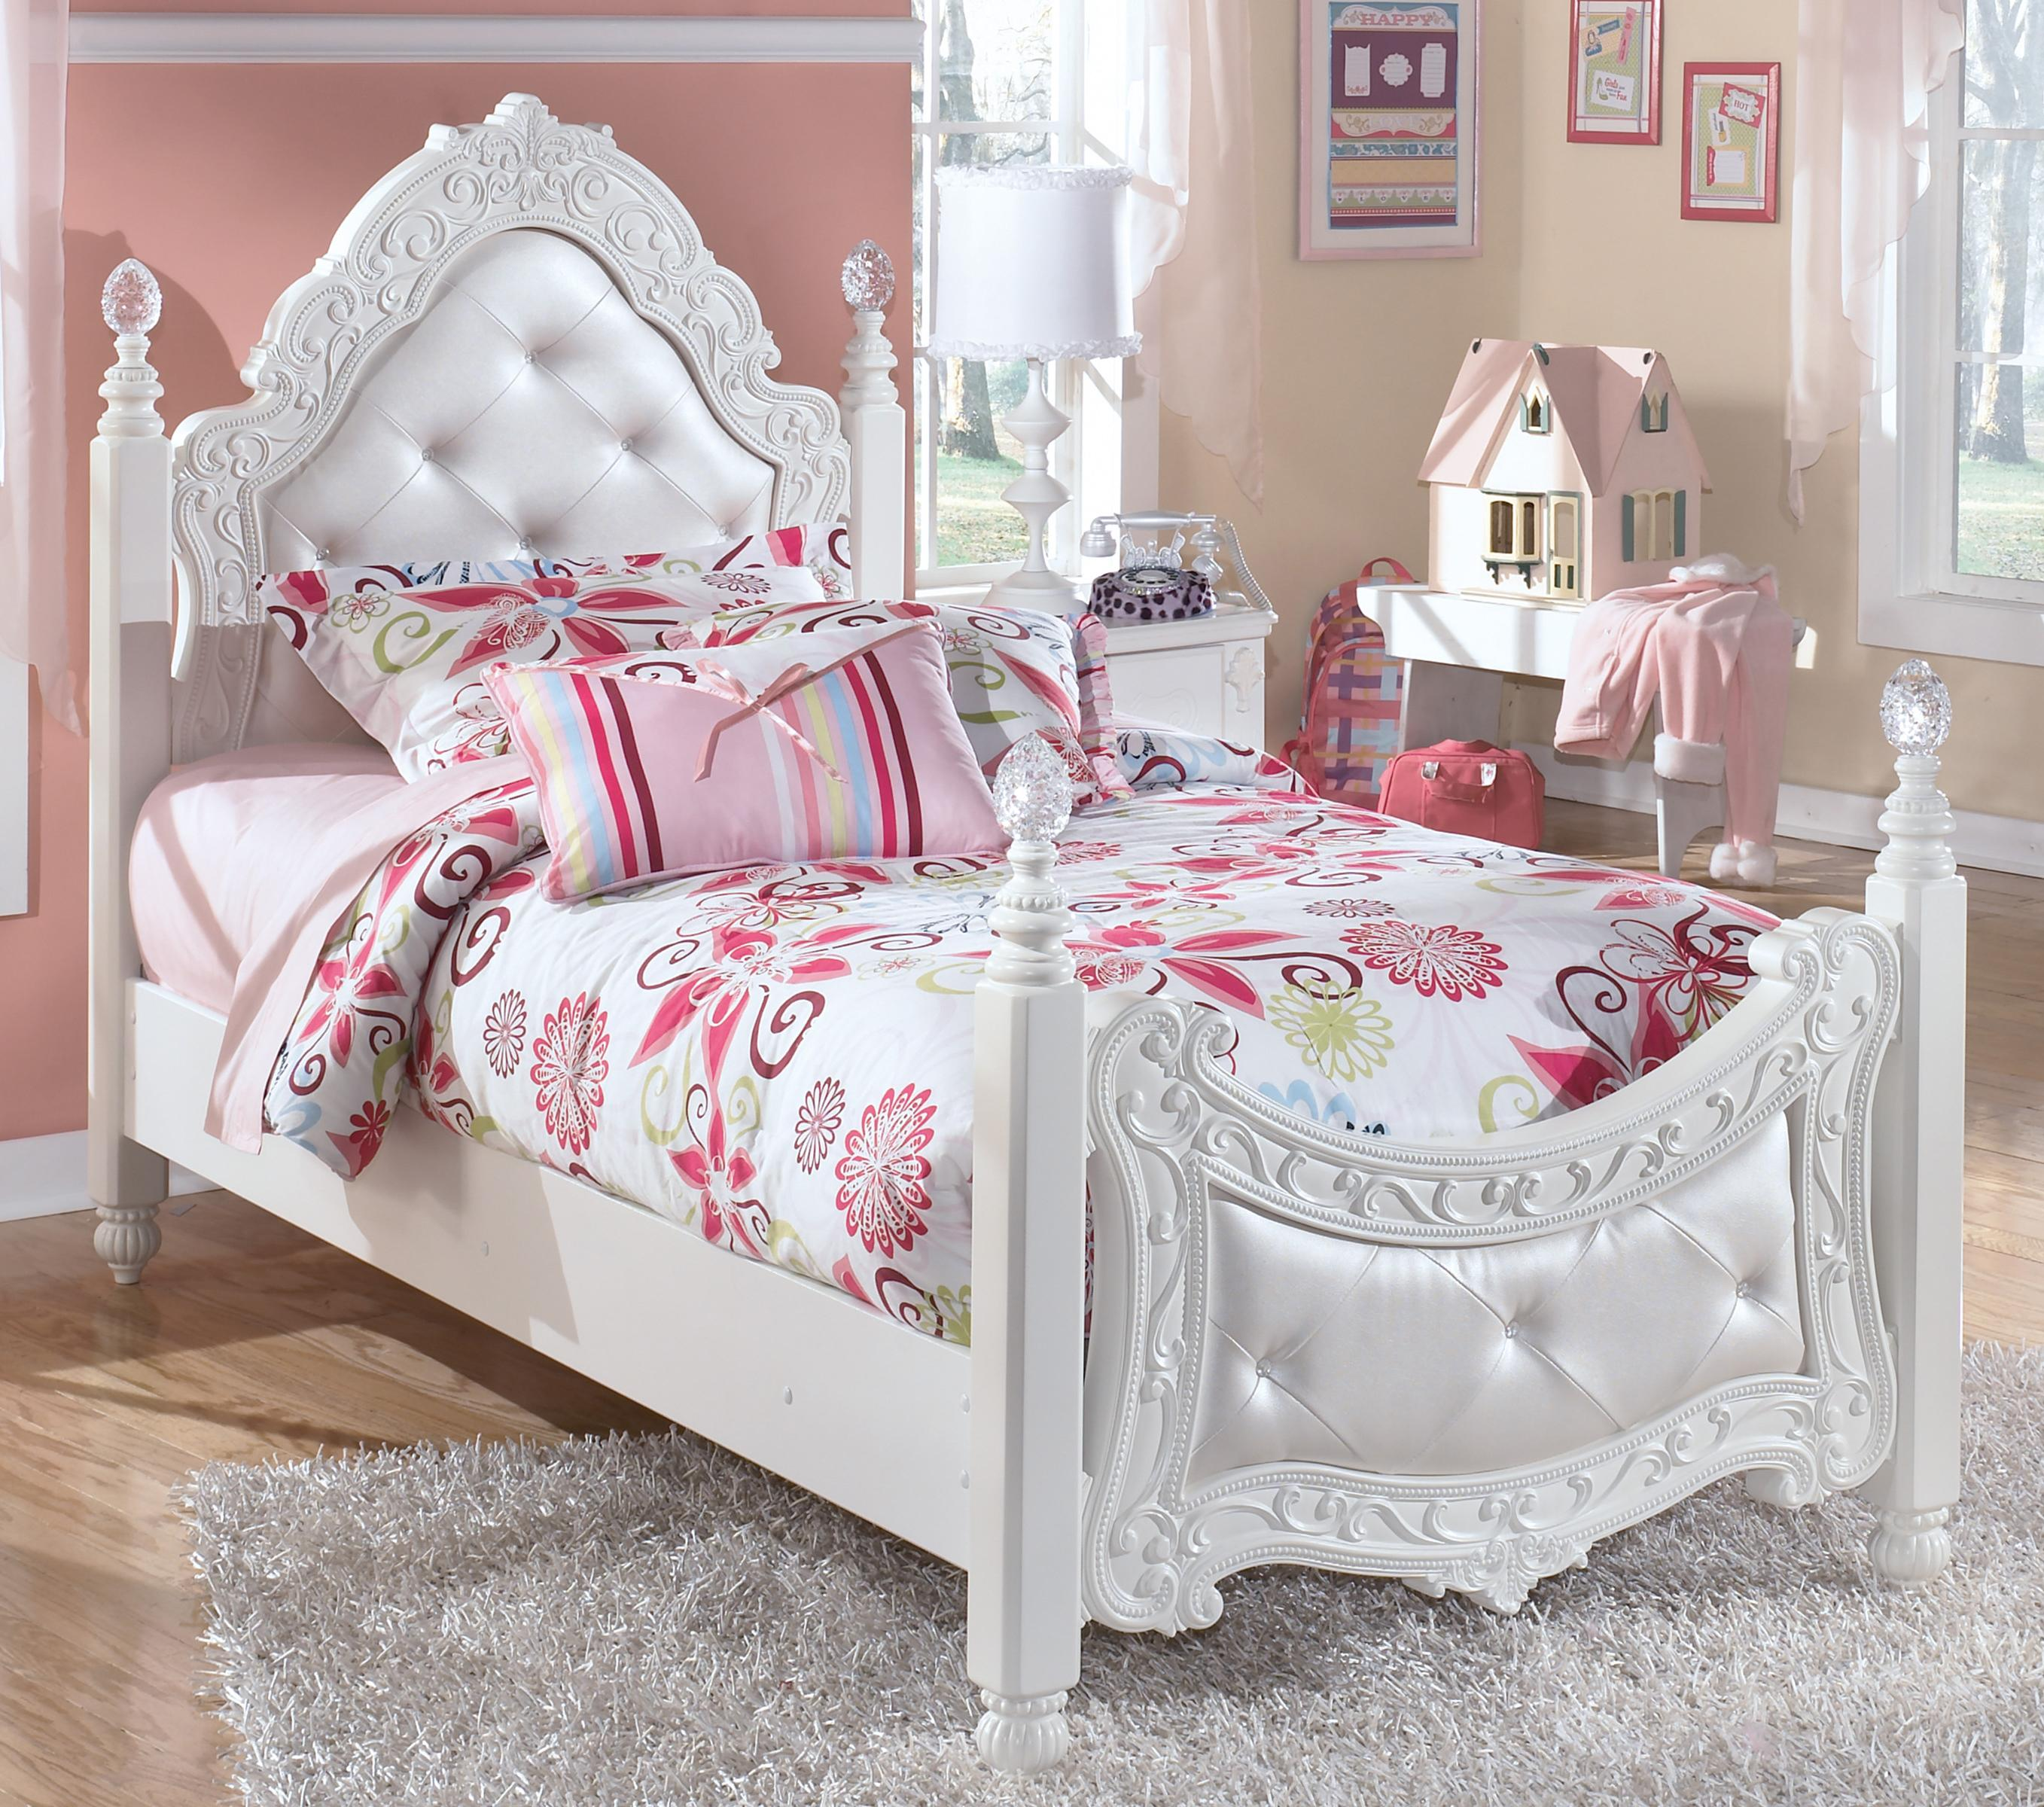 Twin Ornate Poster Bed With Tufted Headboard Amp Footboard